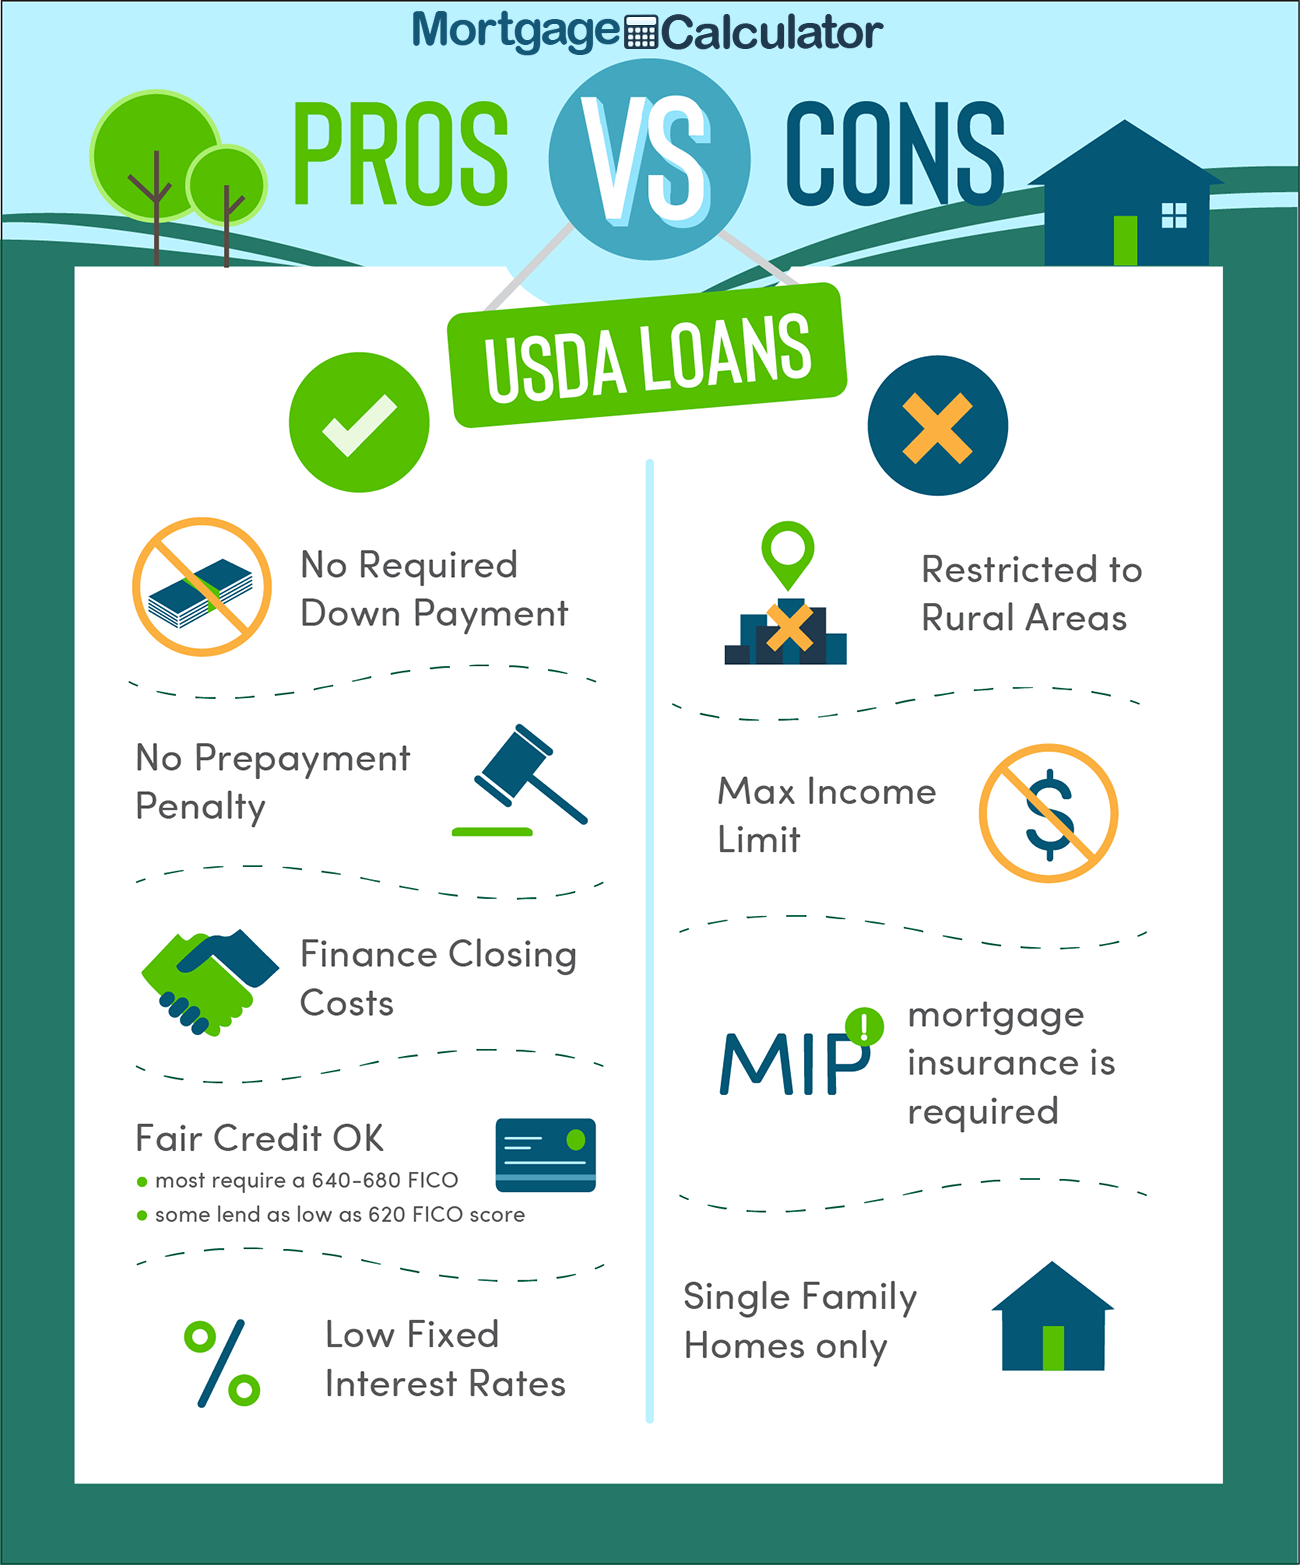 USDA Loan Pros and Cons.